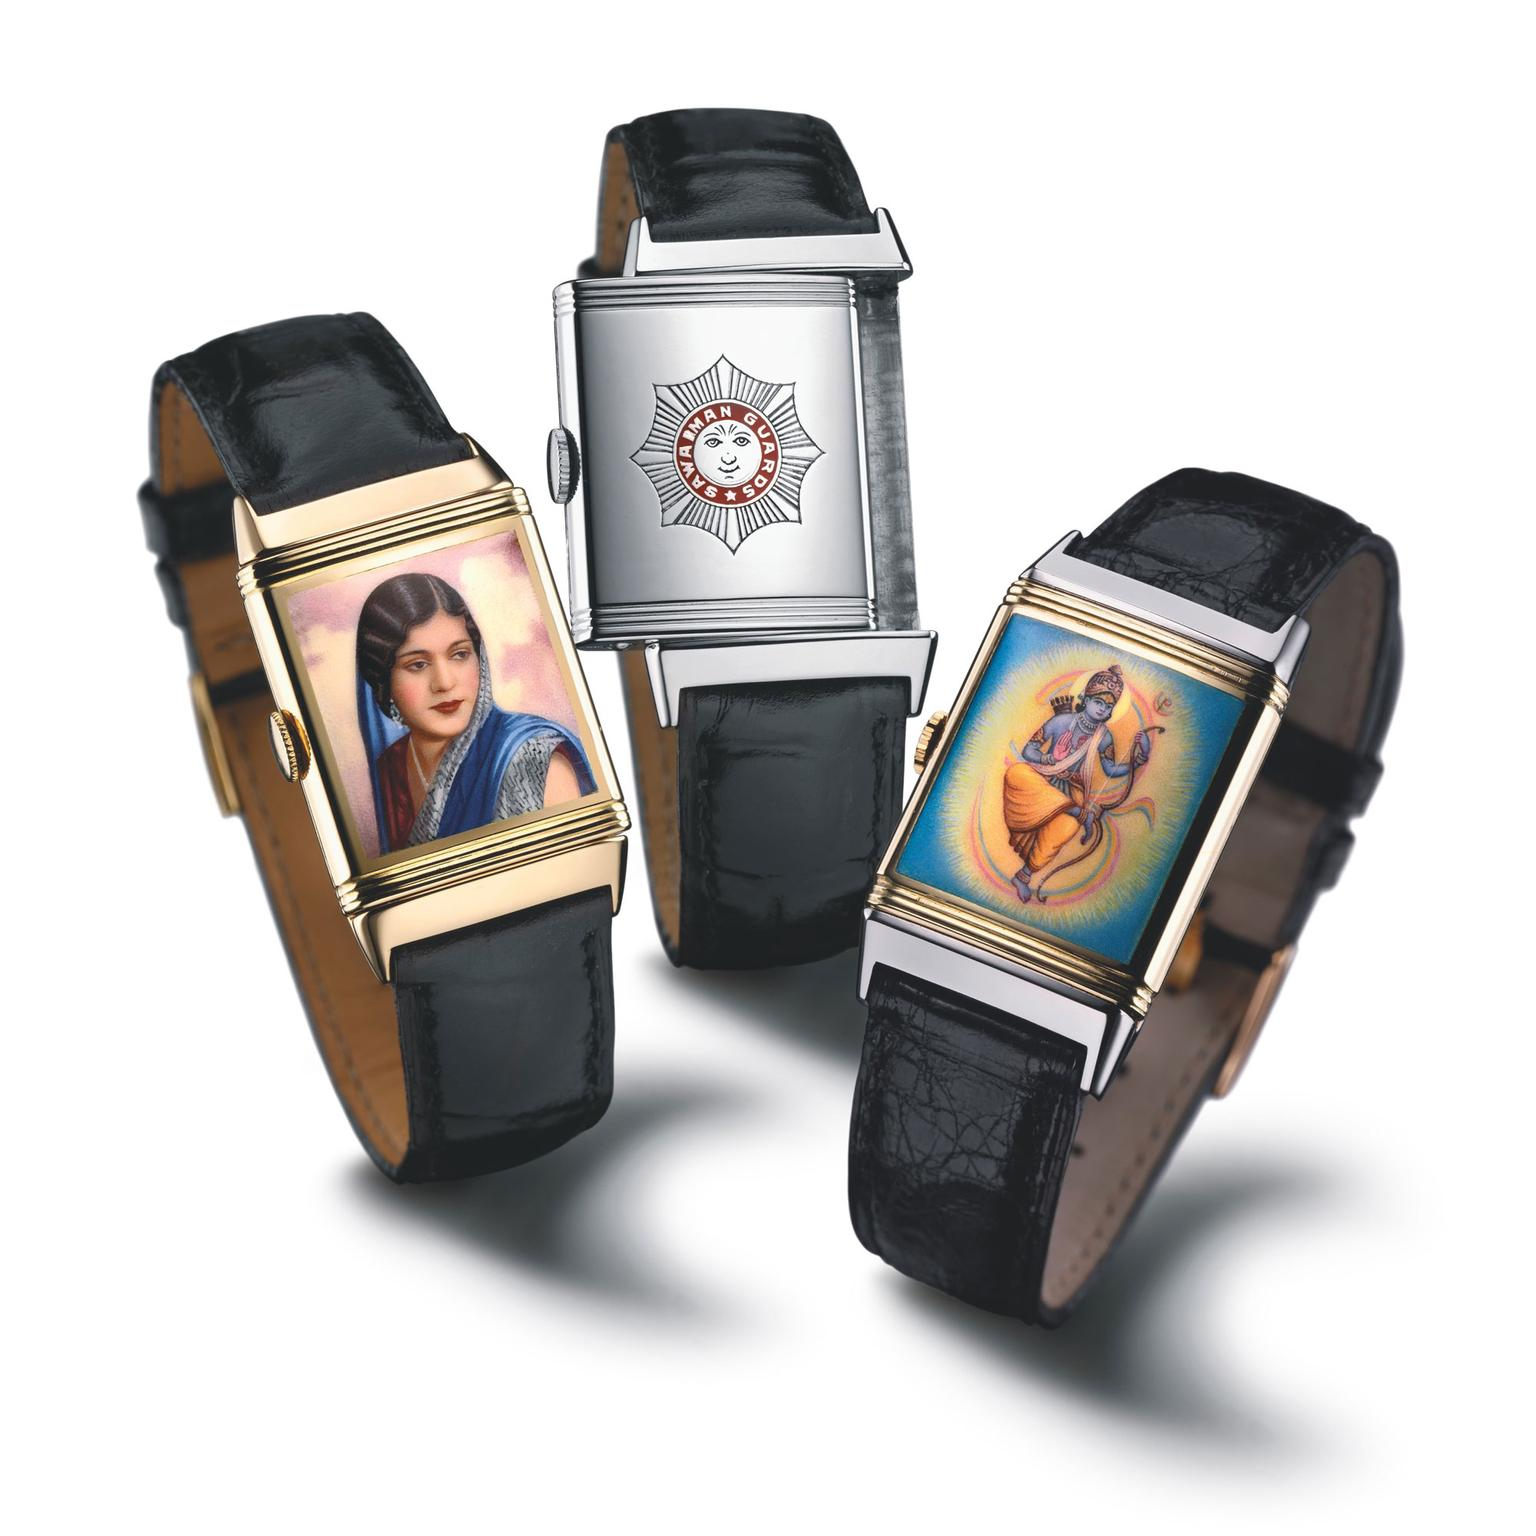 Jaeger-LeCoultre Reverso watches of the maharajas